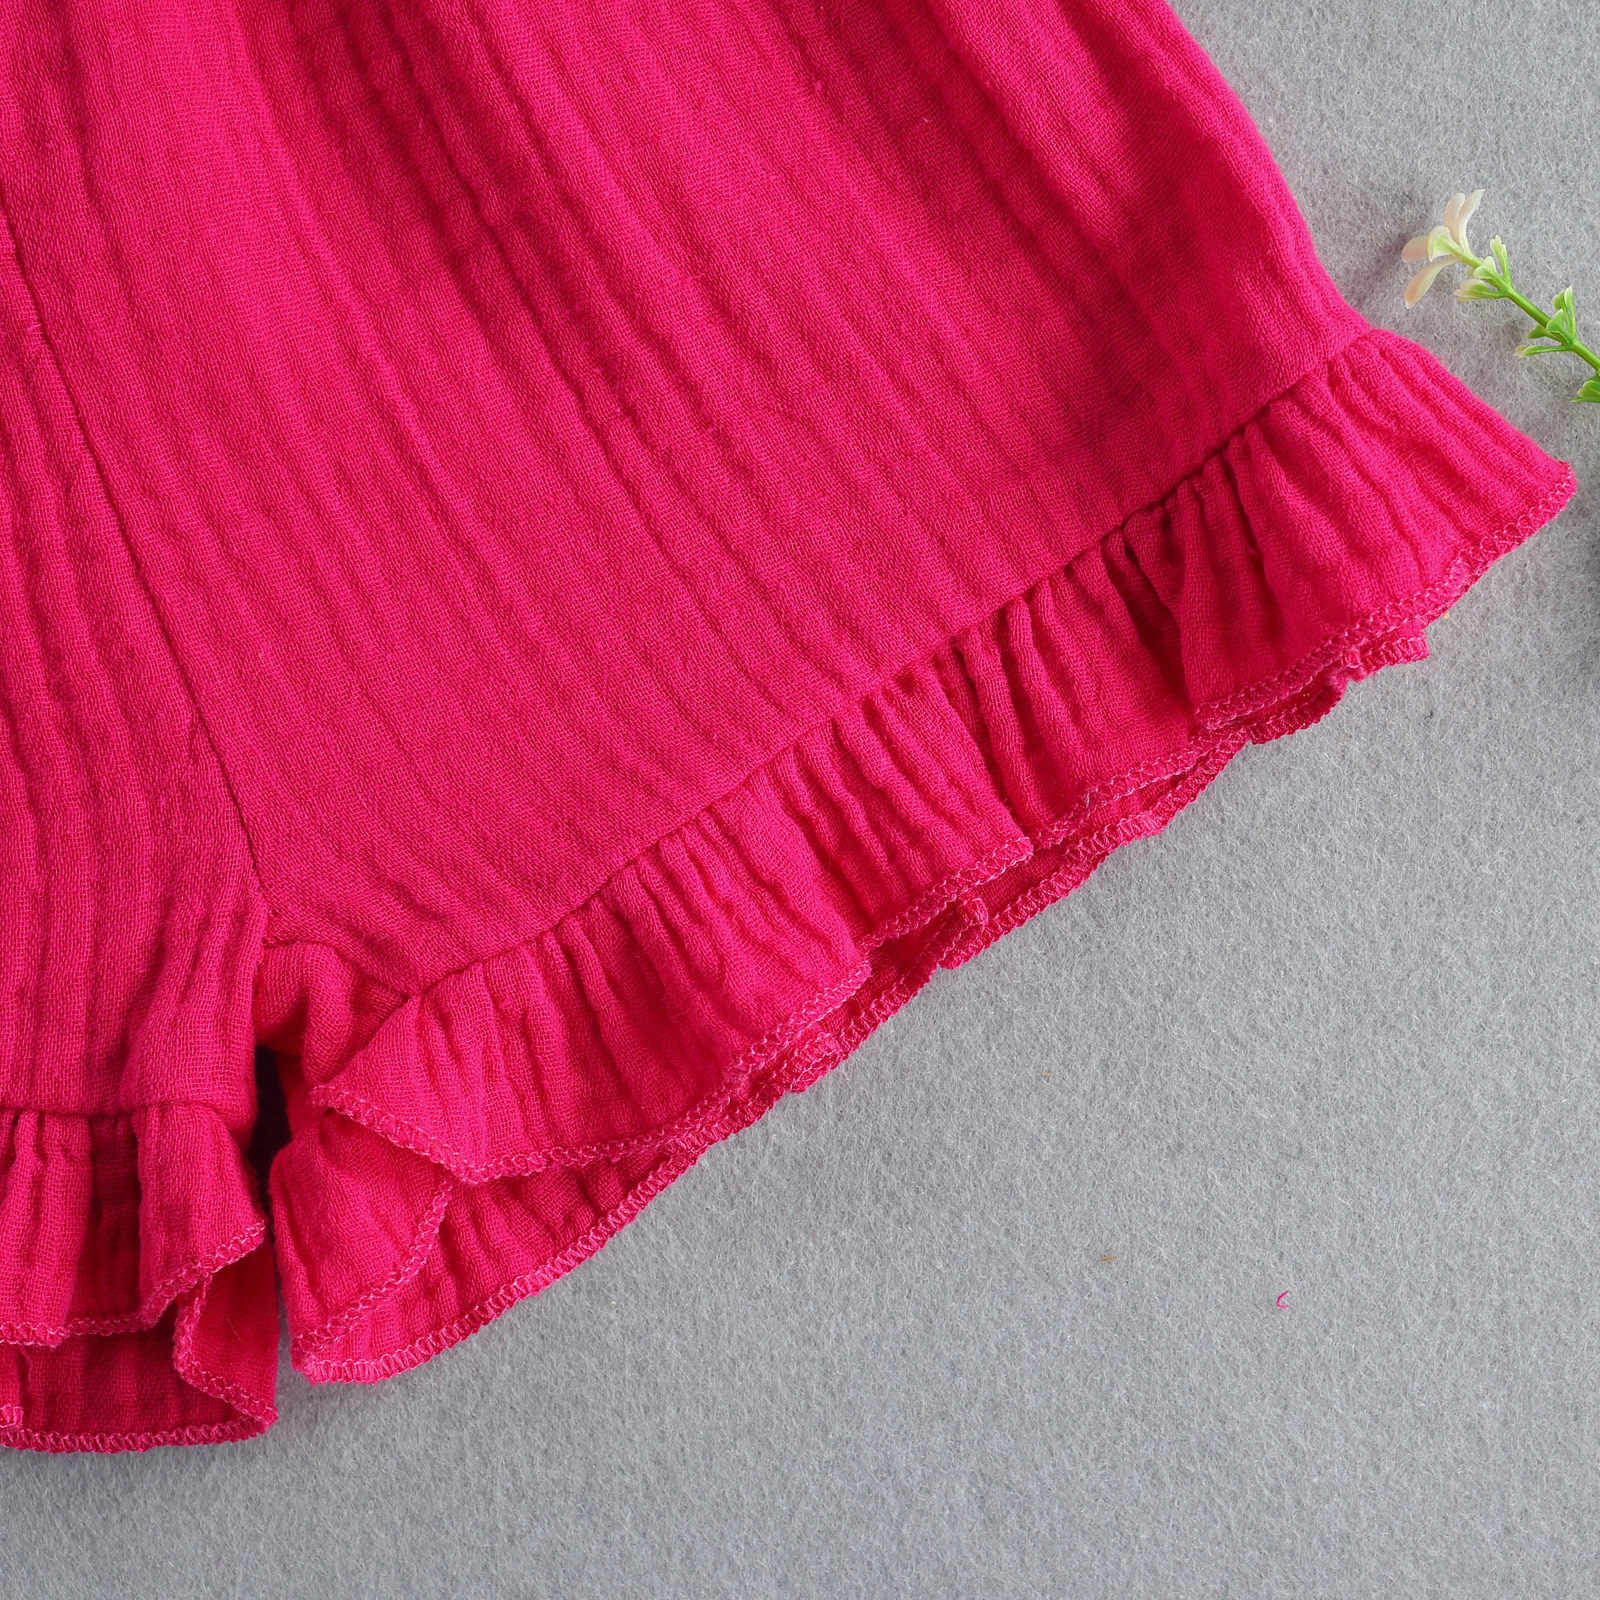 LW COTTON Girl Street Flared Ruffle Design Rose Red Two Piece Shorts Set(With Headband)